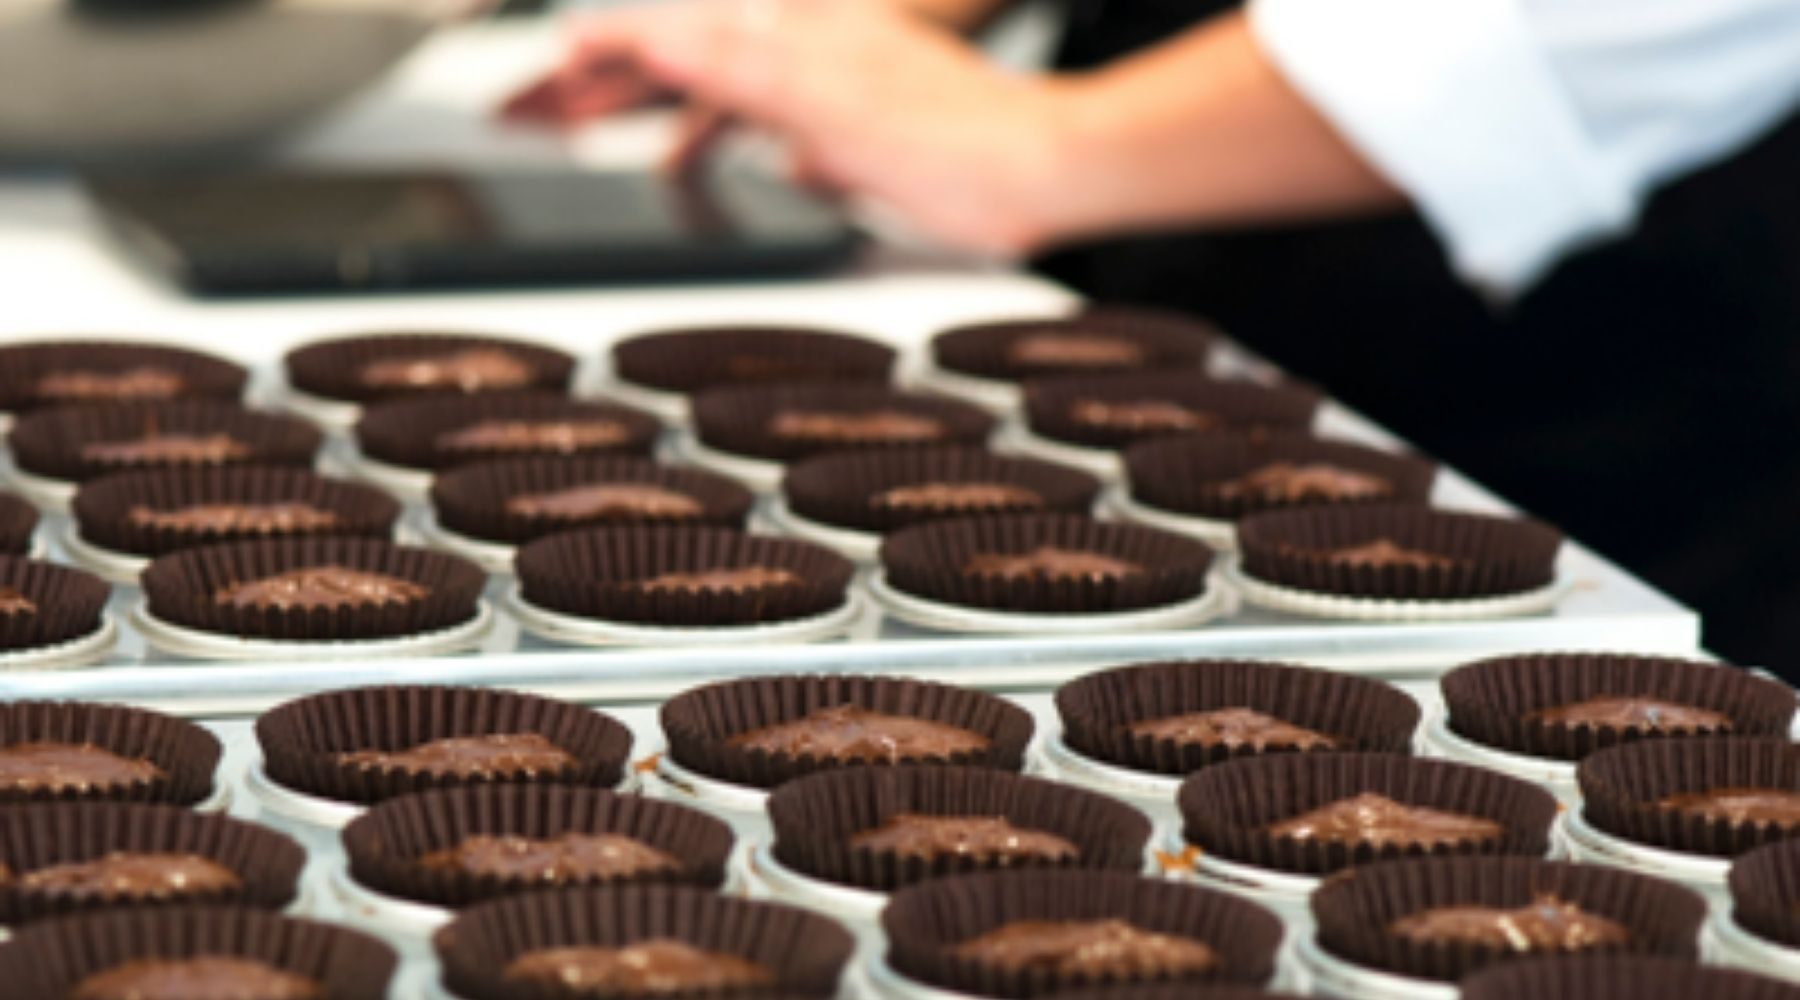 Trays of cupcakes